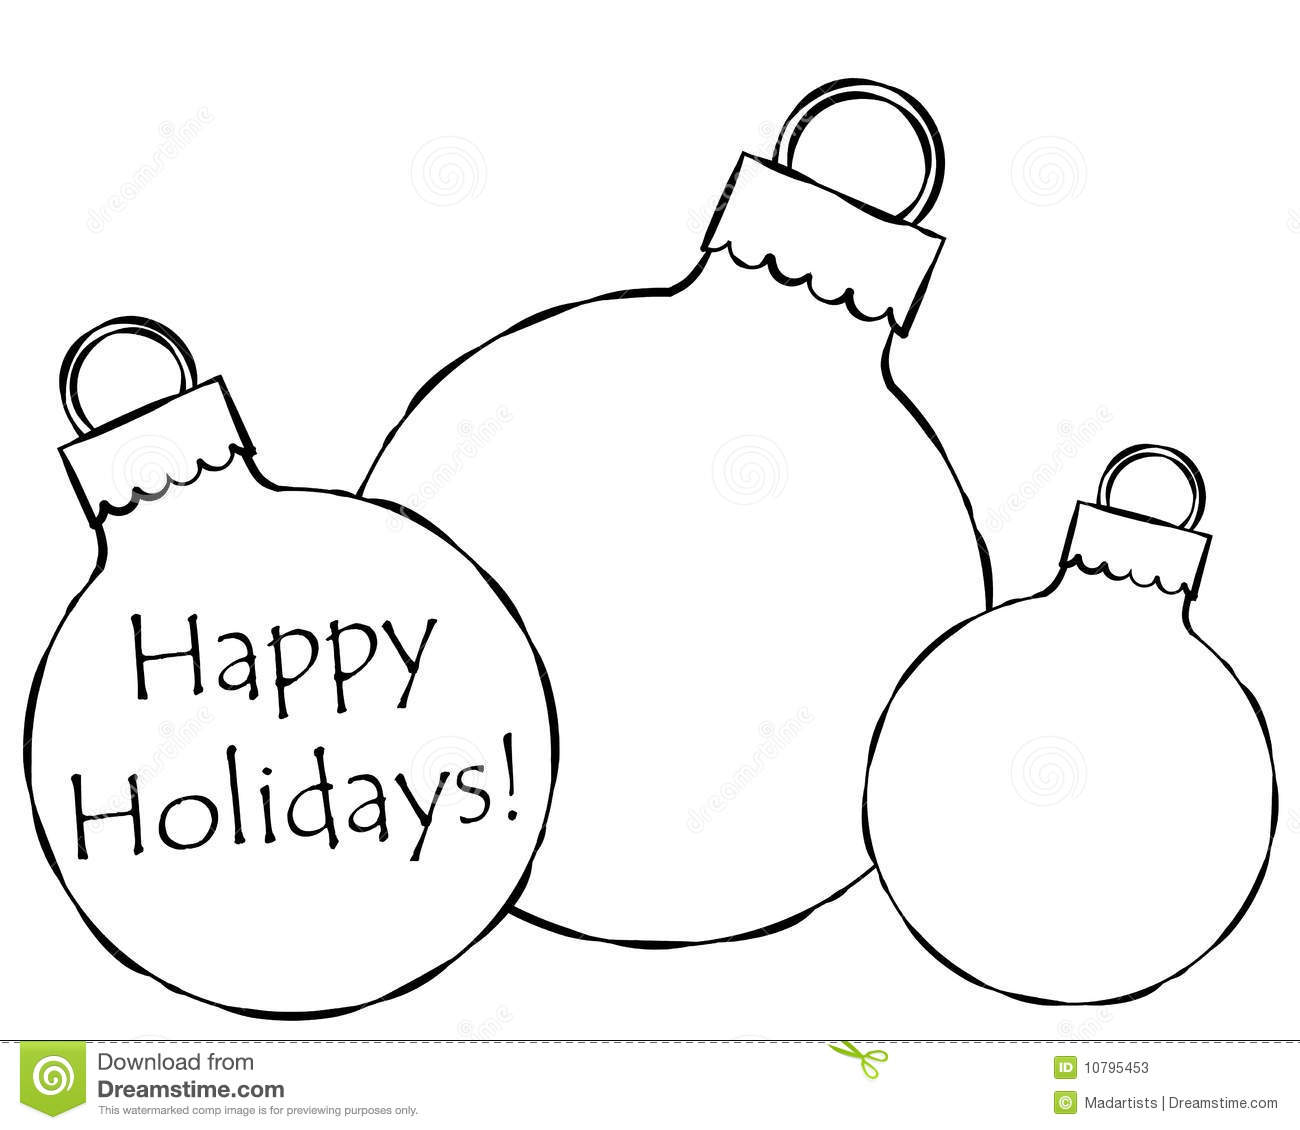 Christmas Ornaments Illustration Stock Photos - Image: 10795453